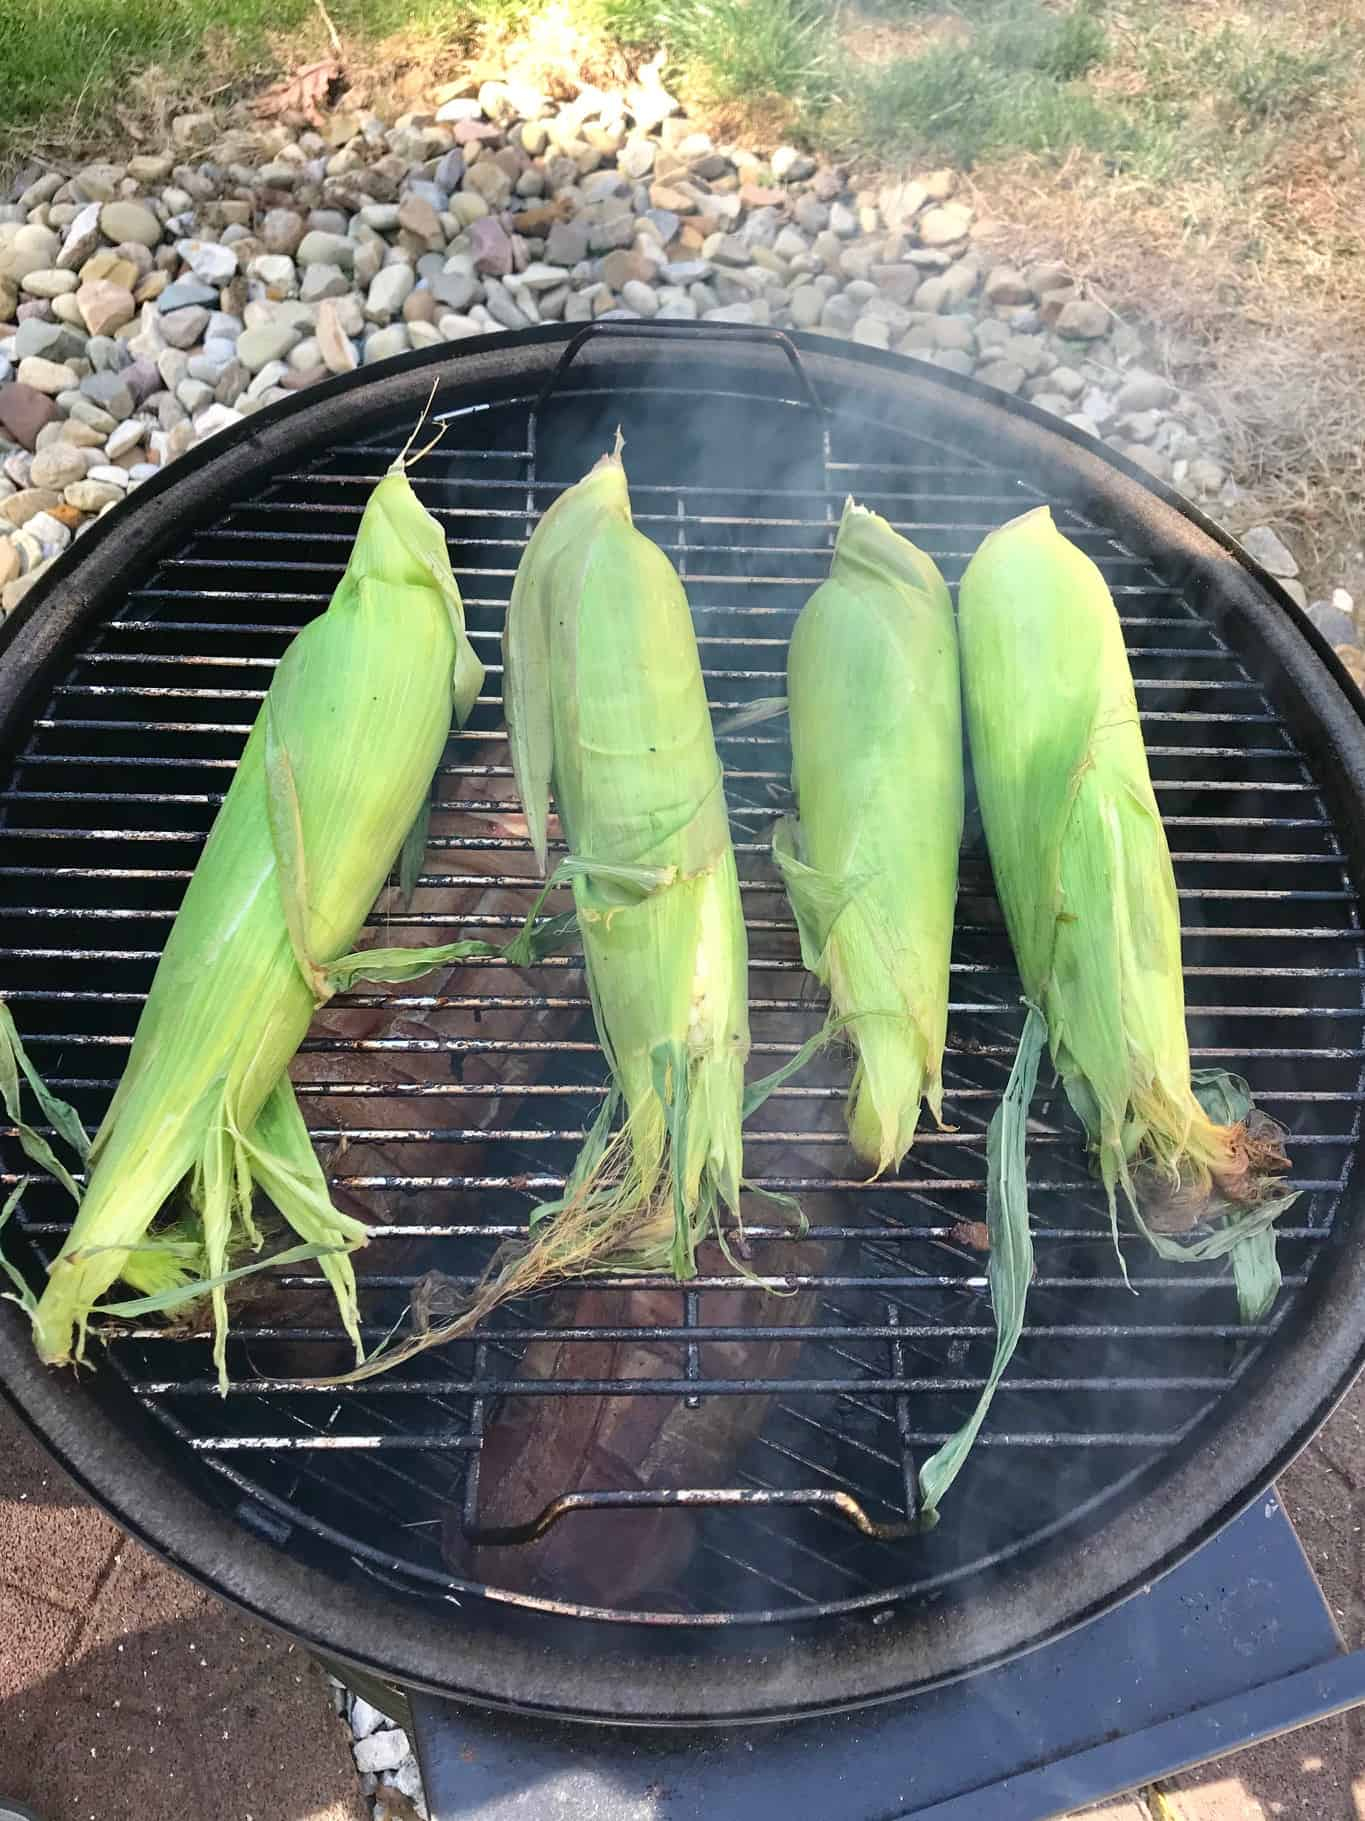 Corn on the cob in husks on weber grill